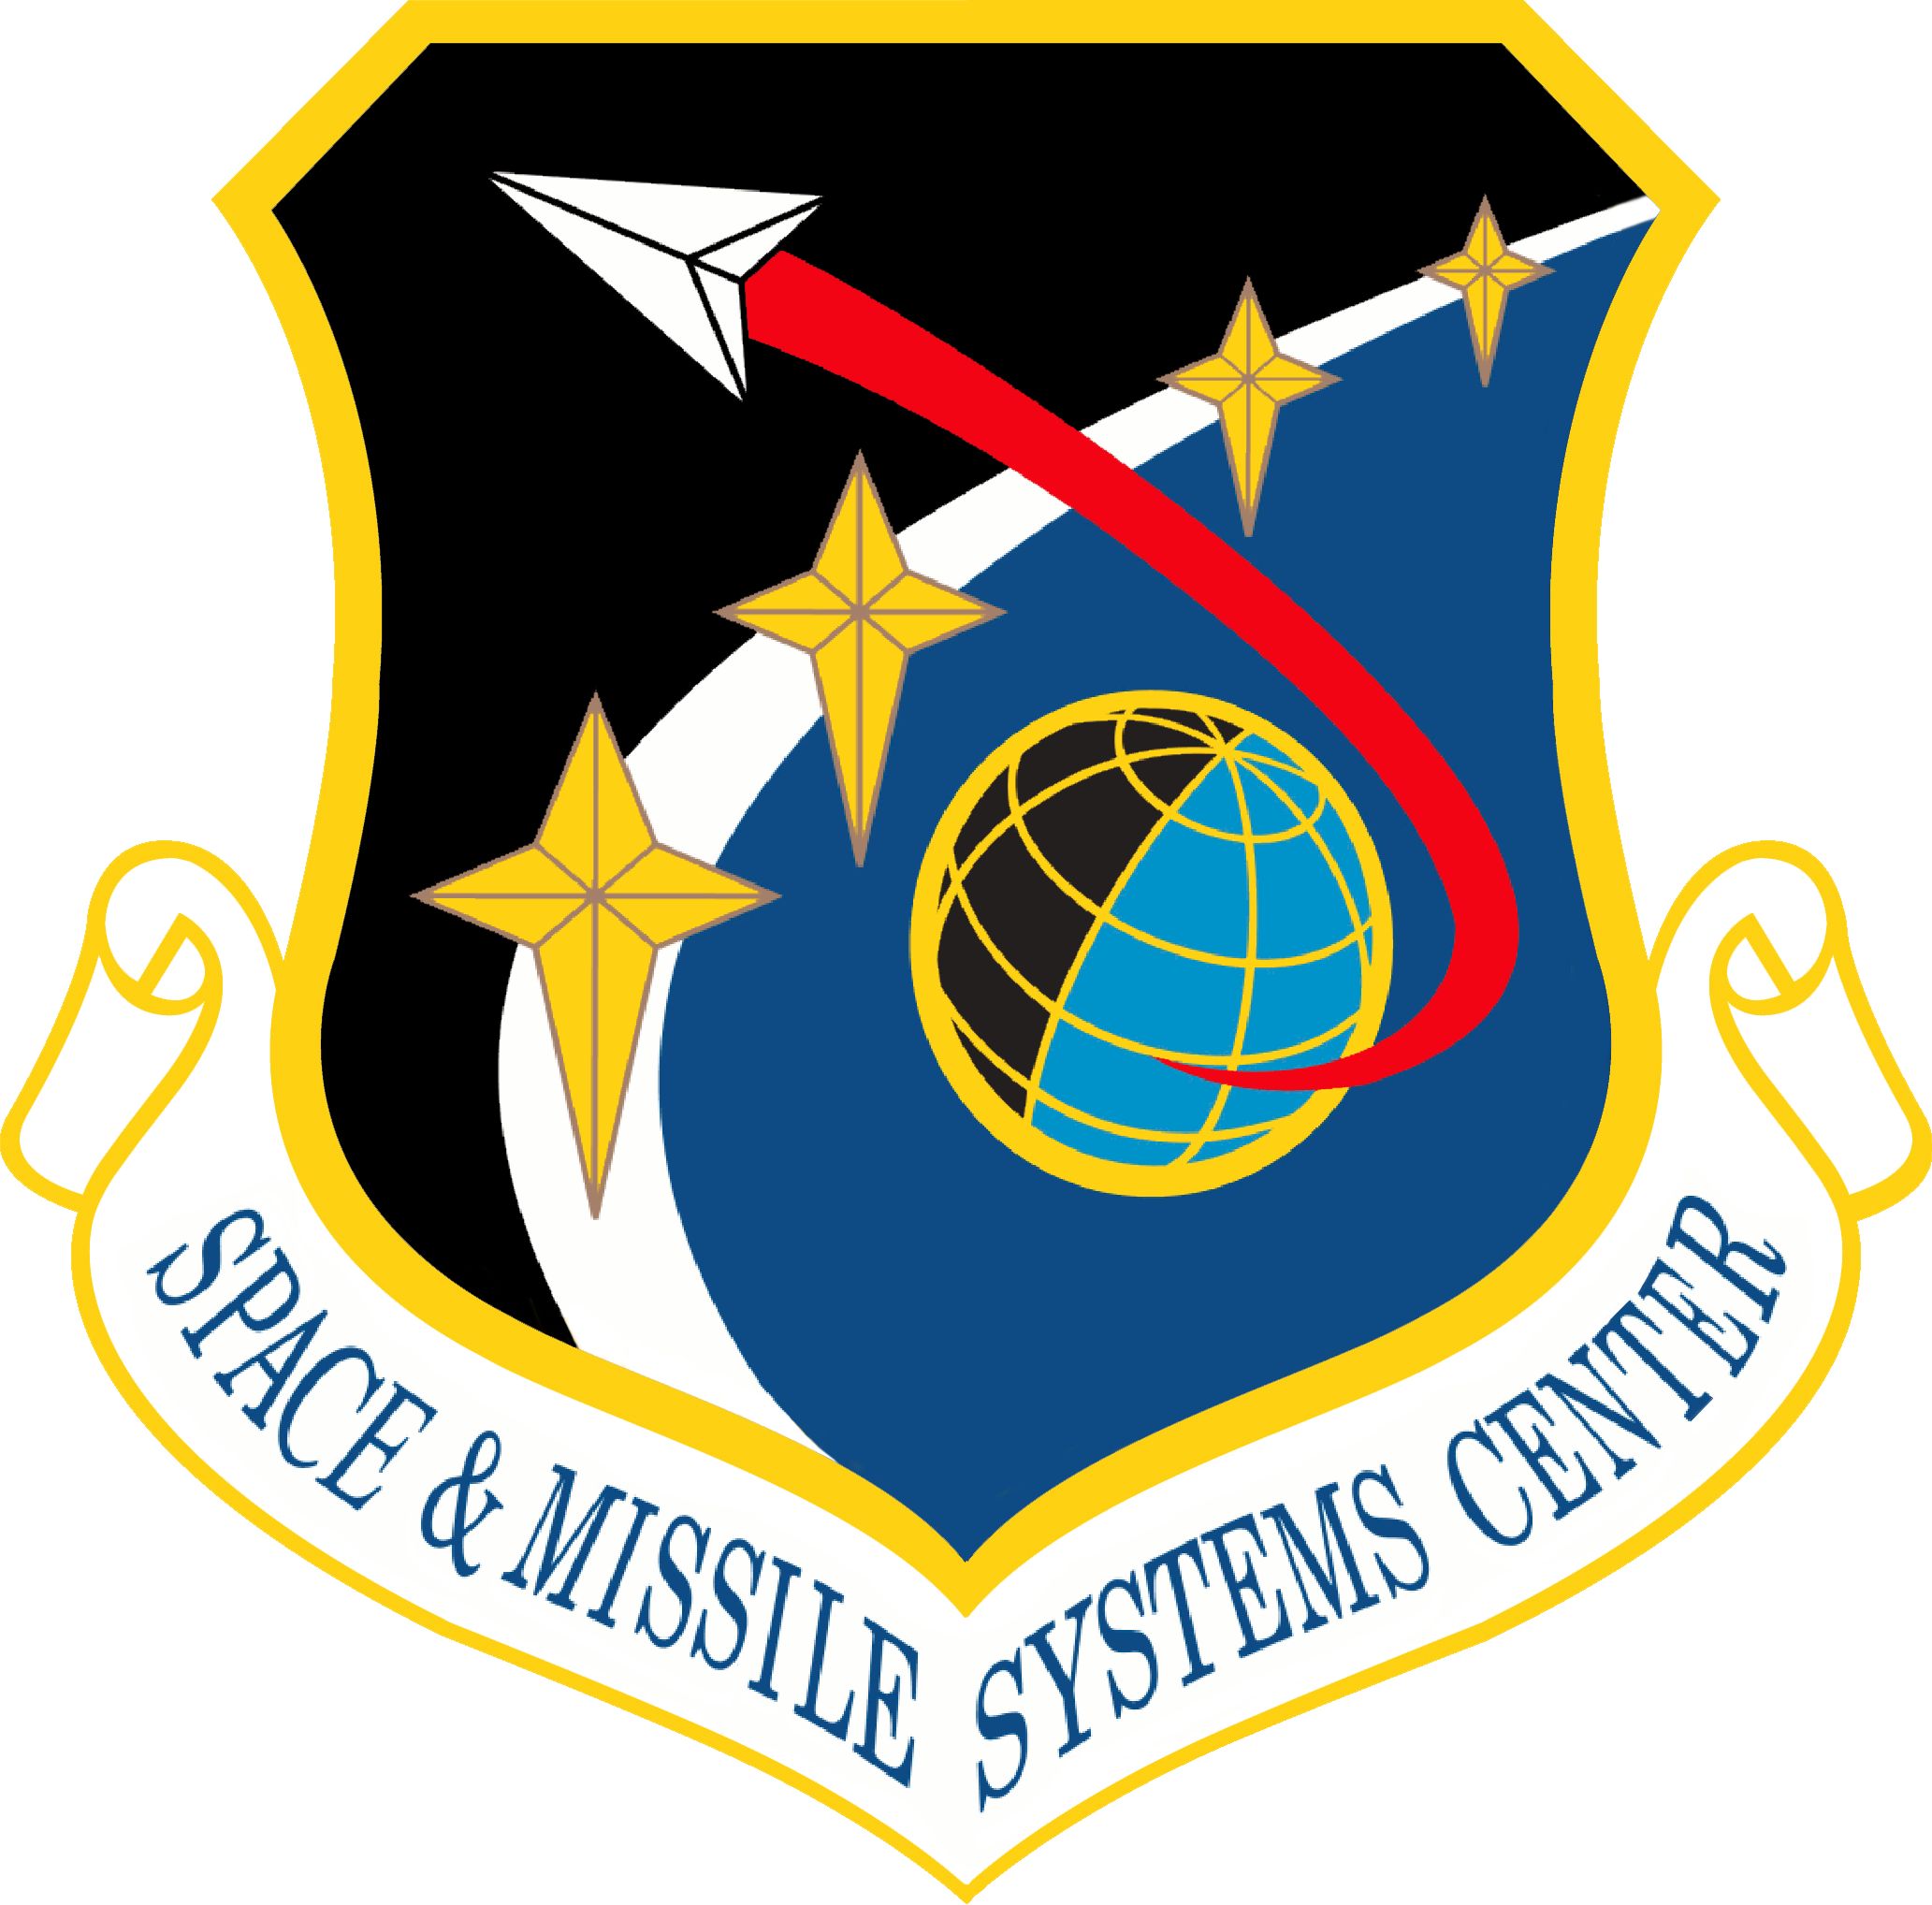 Space and Missile Systems Center Logo transparent #41297